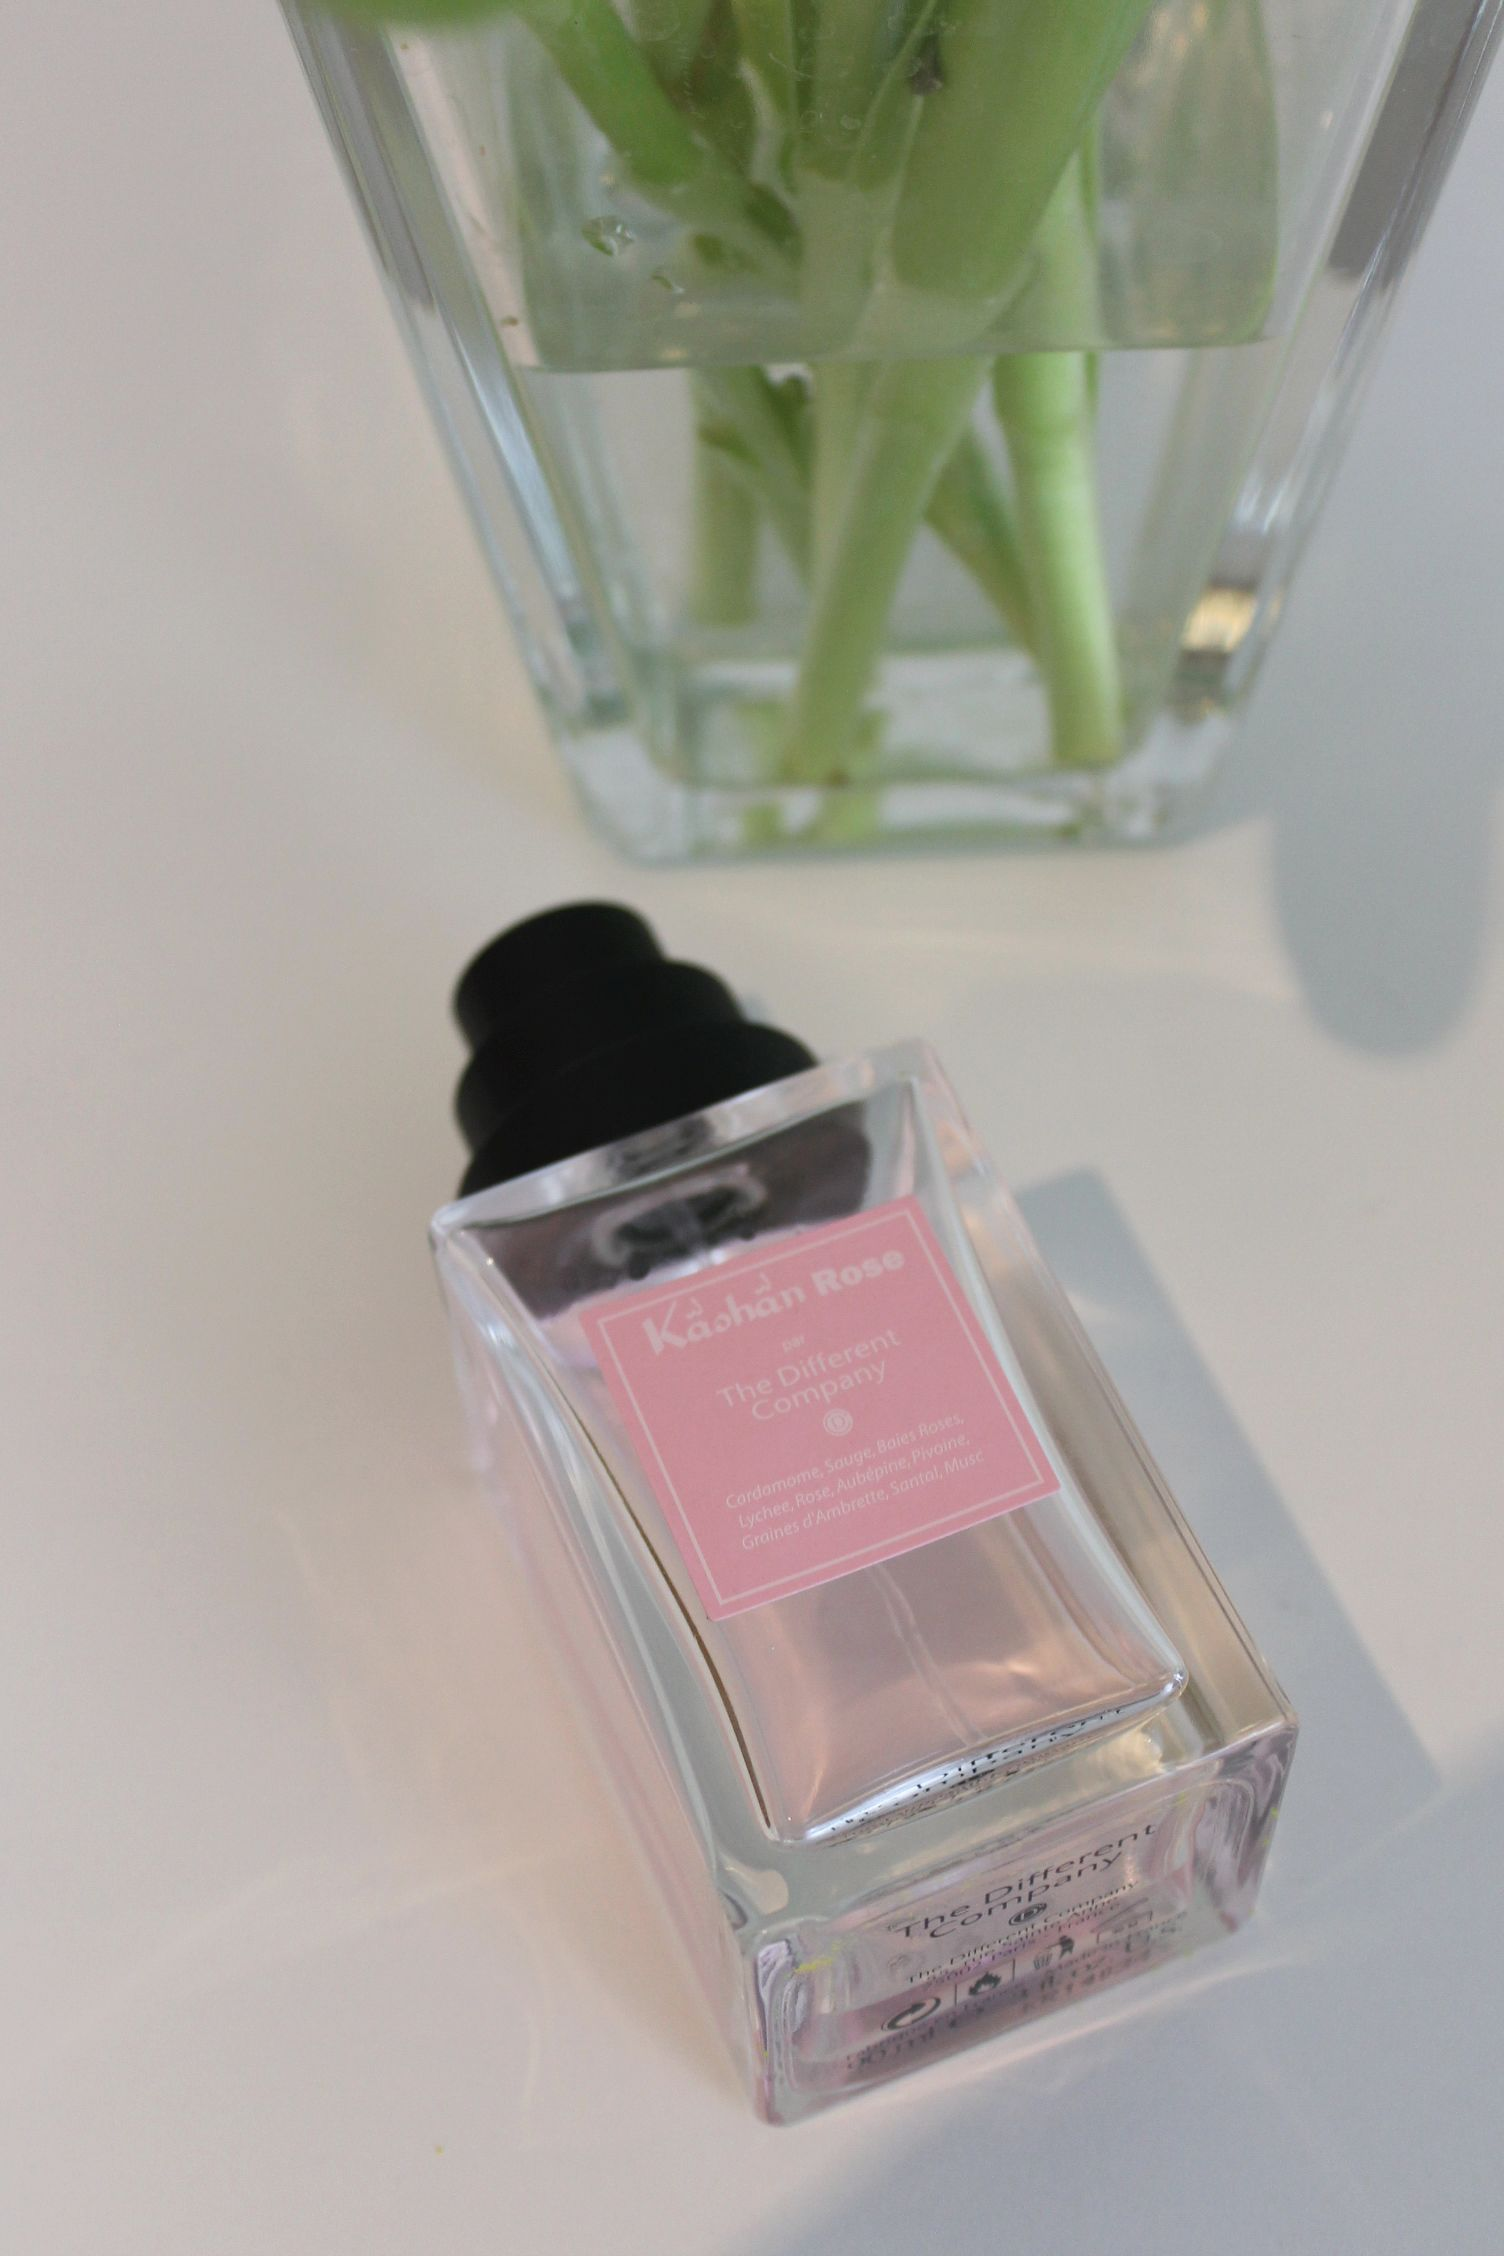 kashan rose recenzja zapachu the tifferent company róża w perfumach